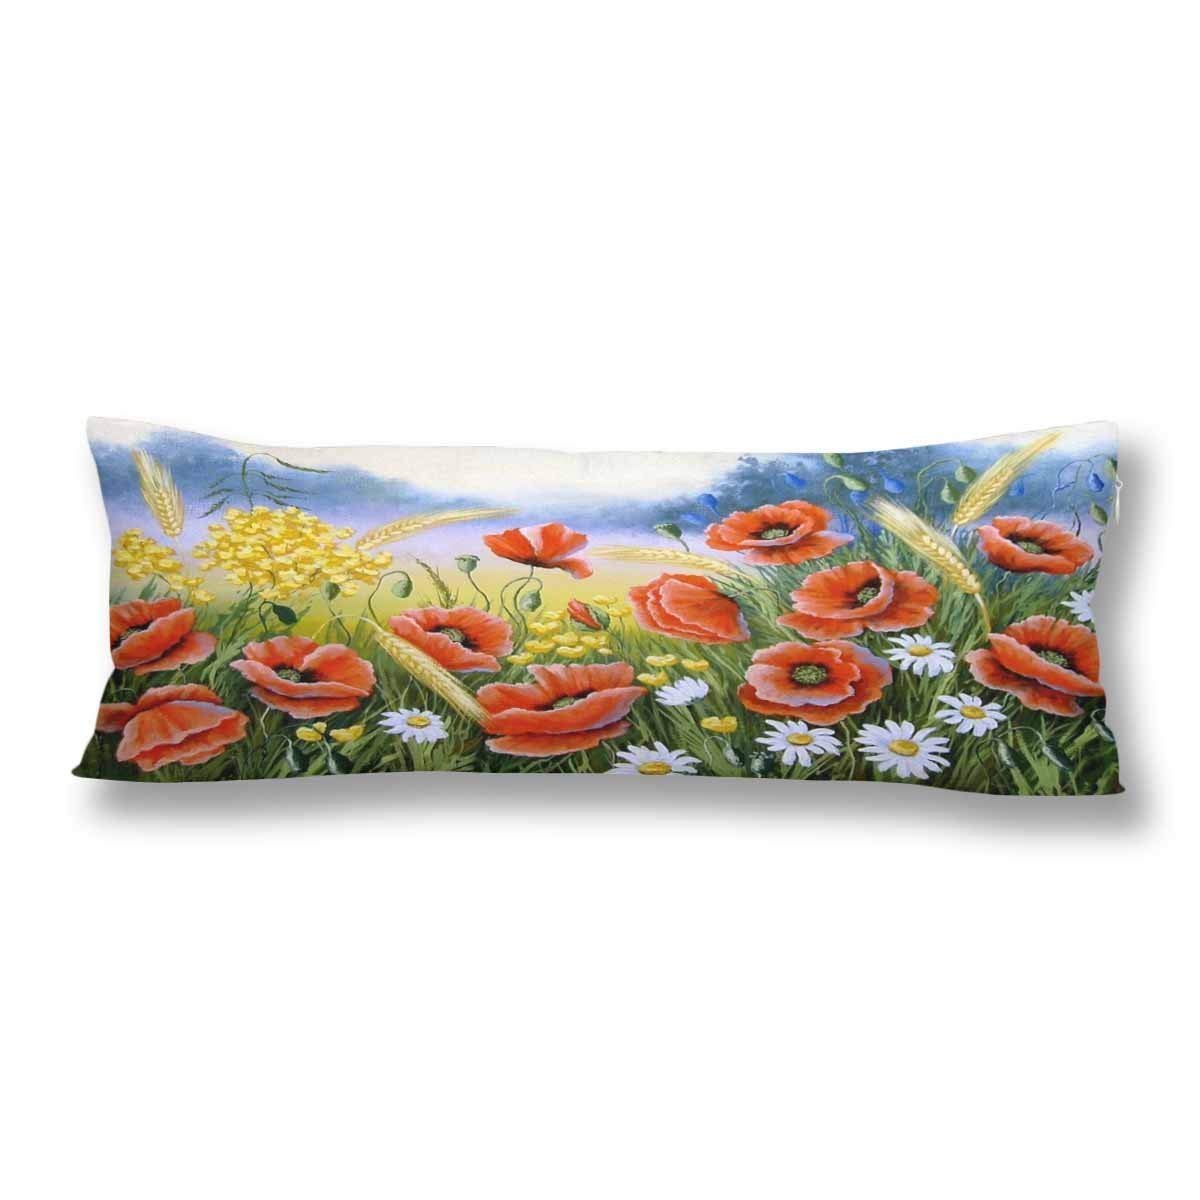 ABPHOTO Poppy Field Landscape Painting Body Pillow Covers Pillowcase 20x60 inch Flower Blue Sky Body Pillow Case Protector